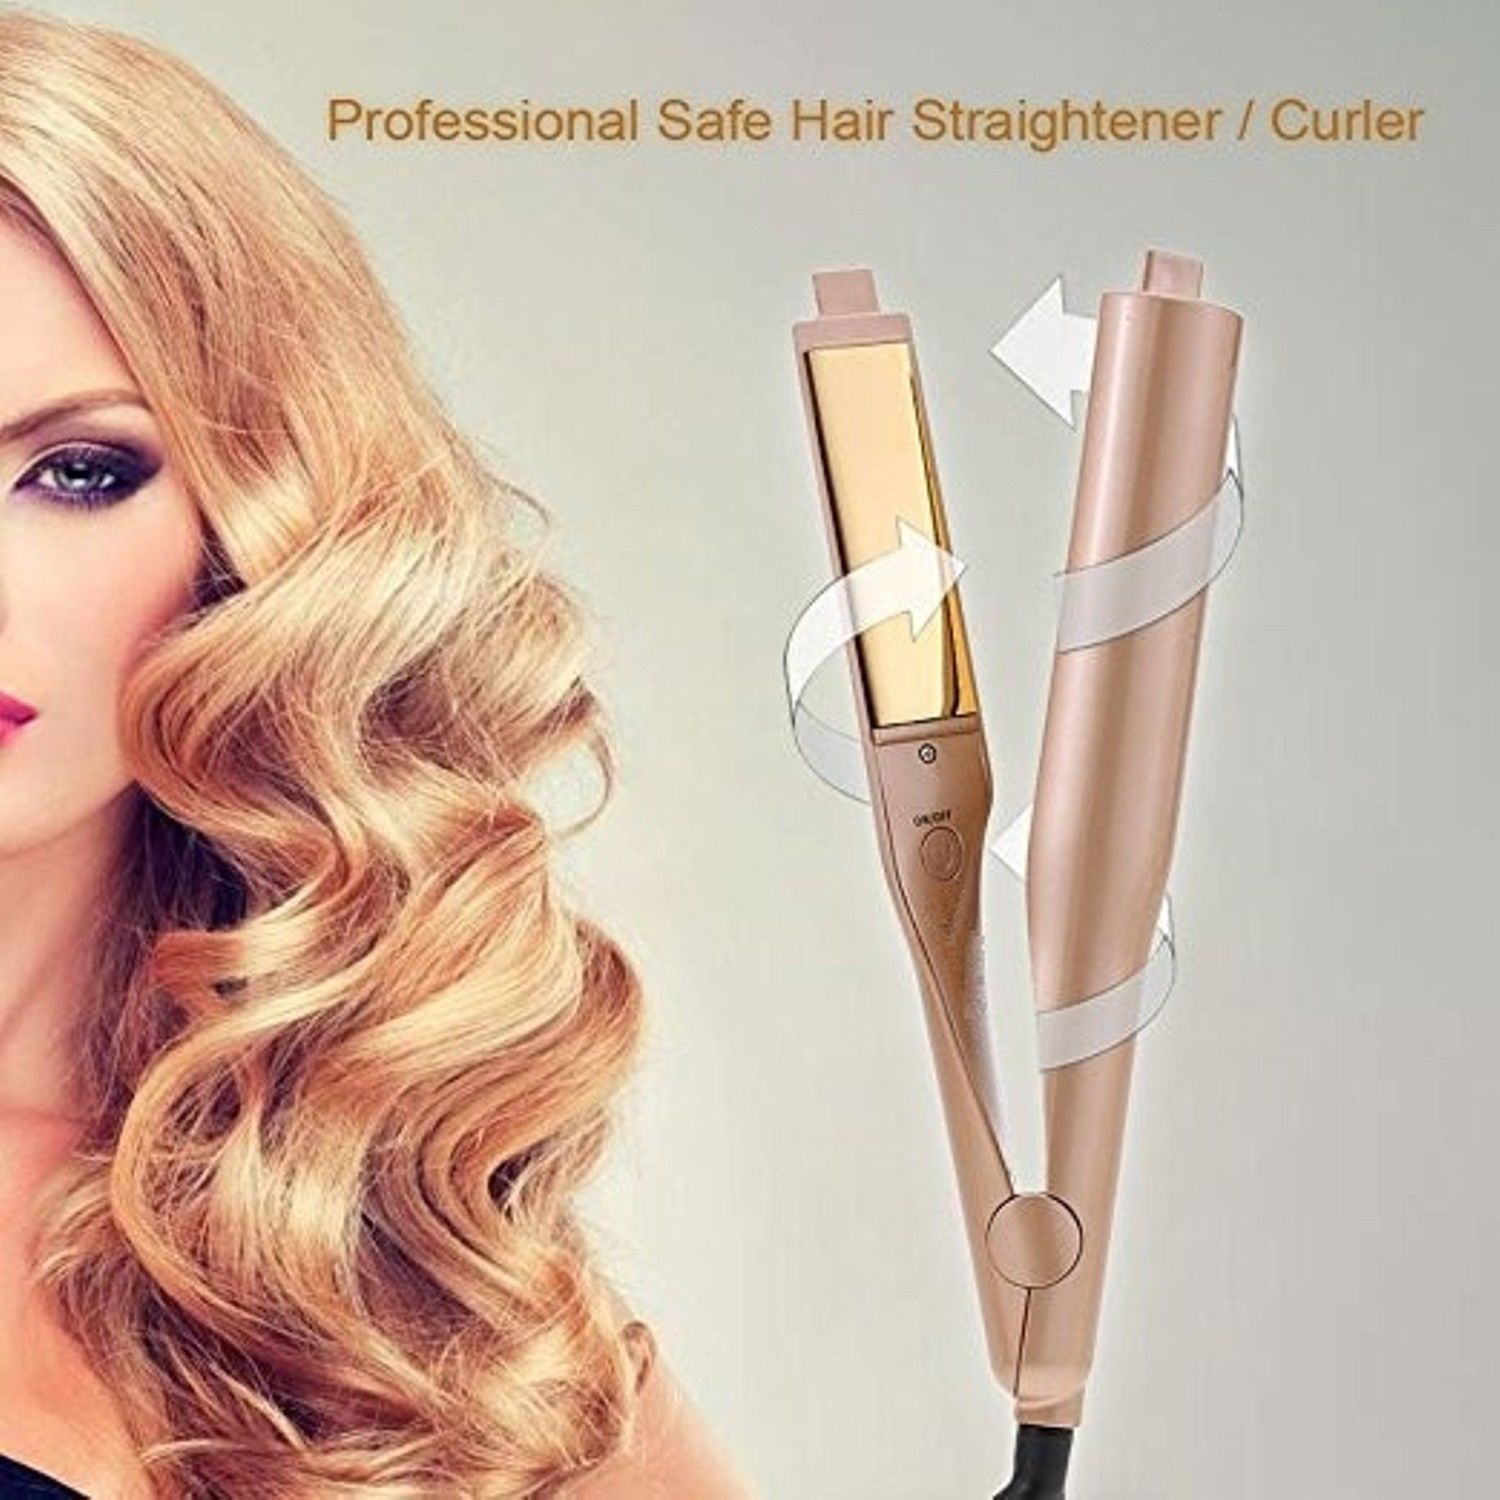 Professional 2in1 Straightener Irons Hair Curler Flat Iron Straightening Styling Tools Iron Curling Ceramic Wave iron km 2209 professional hair flat iron curler hair straightener irons 110v 220v eu plug tourmaline ceramic coating styling tools